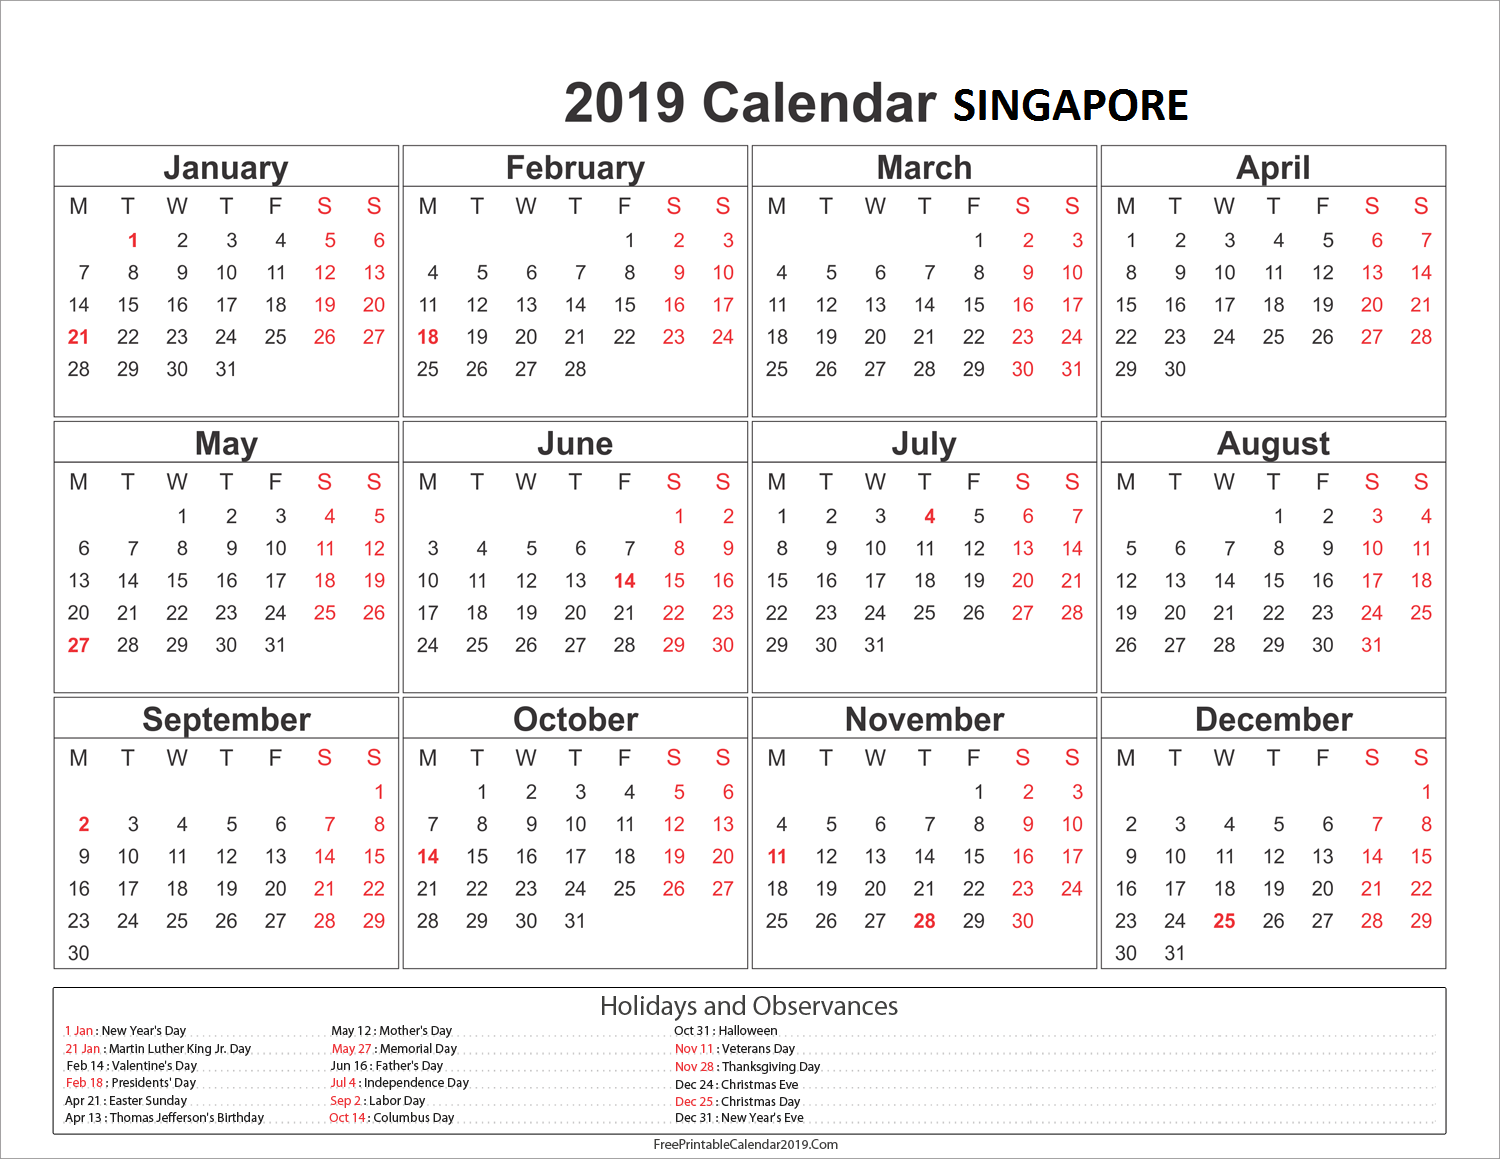 Year 2019 Calendar Singapore With Yearly Holidays Download November